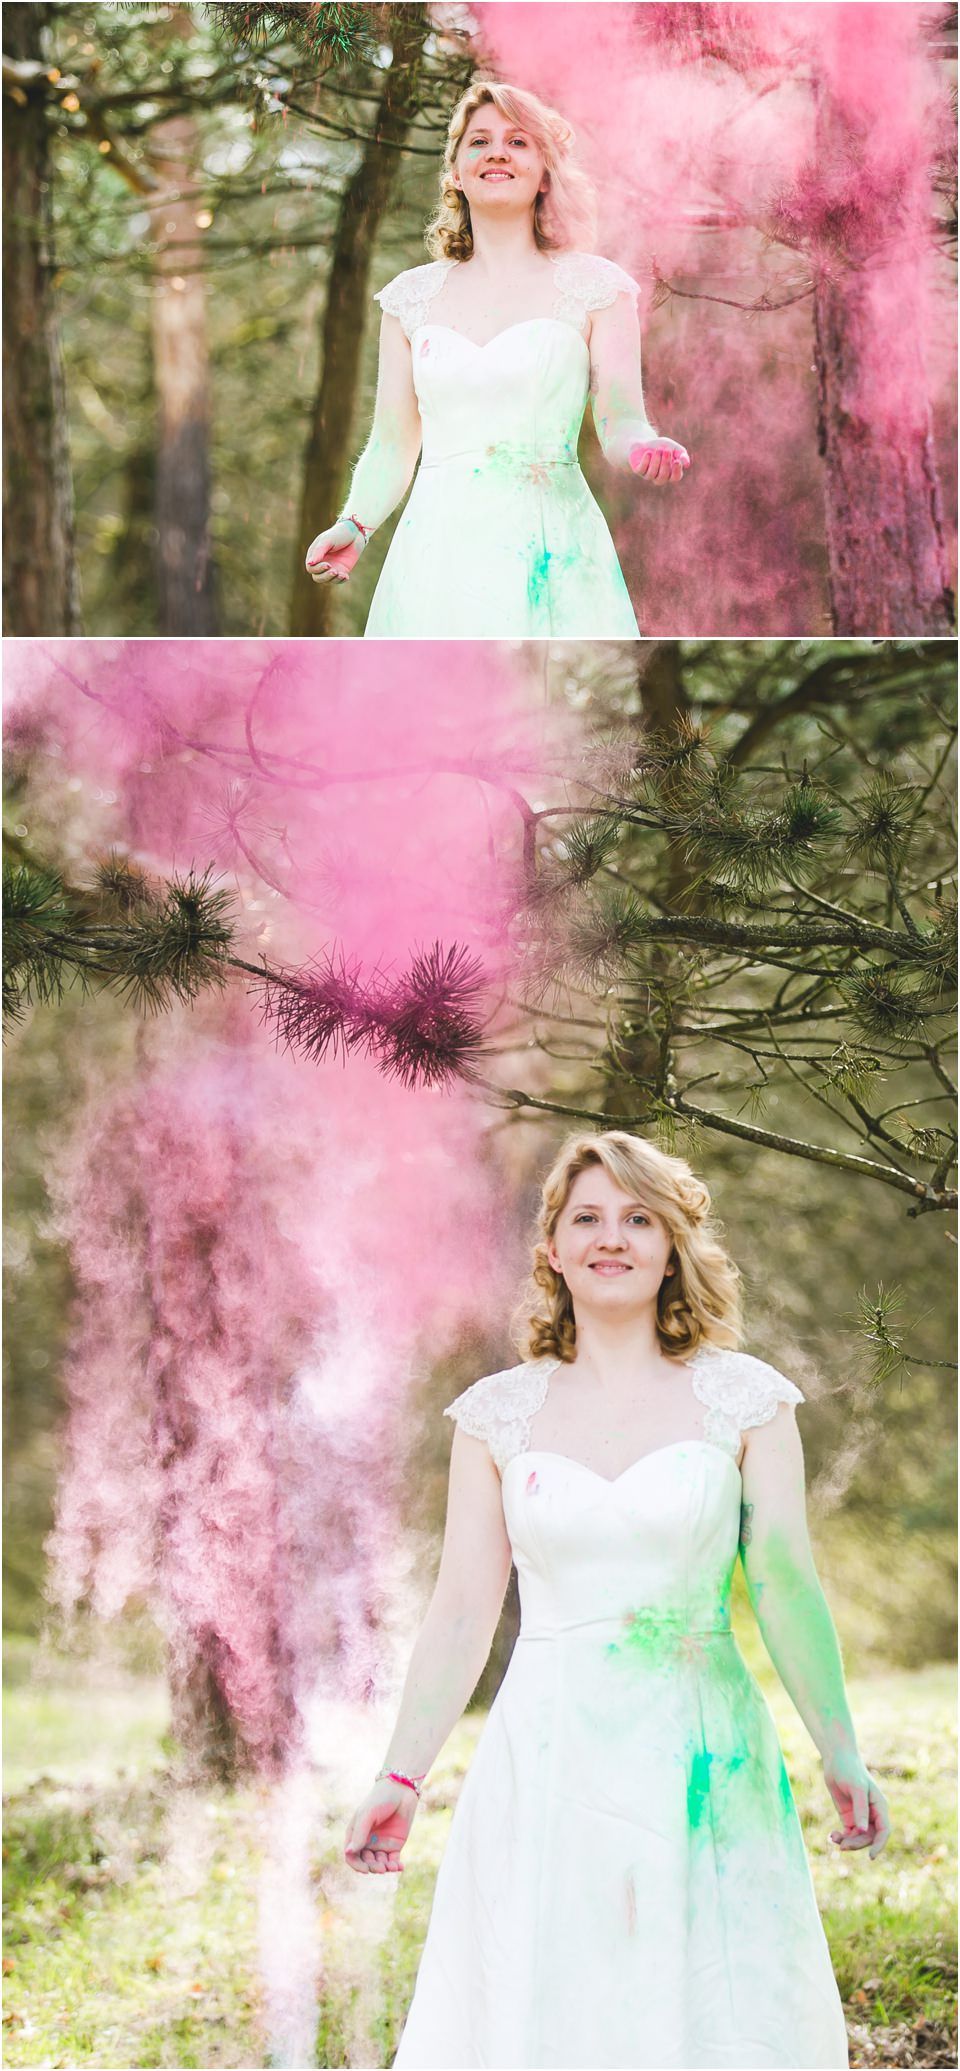 Trash-The-Dress-after-wedding-holi-color-shooting-heidelberg-schwetzingen-herr-knebel-fotografie 1